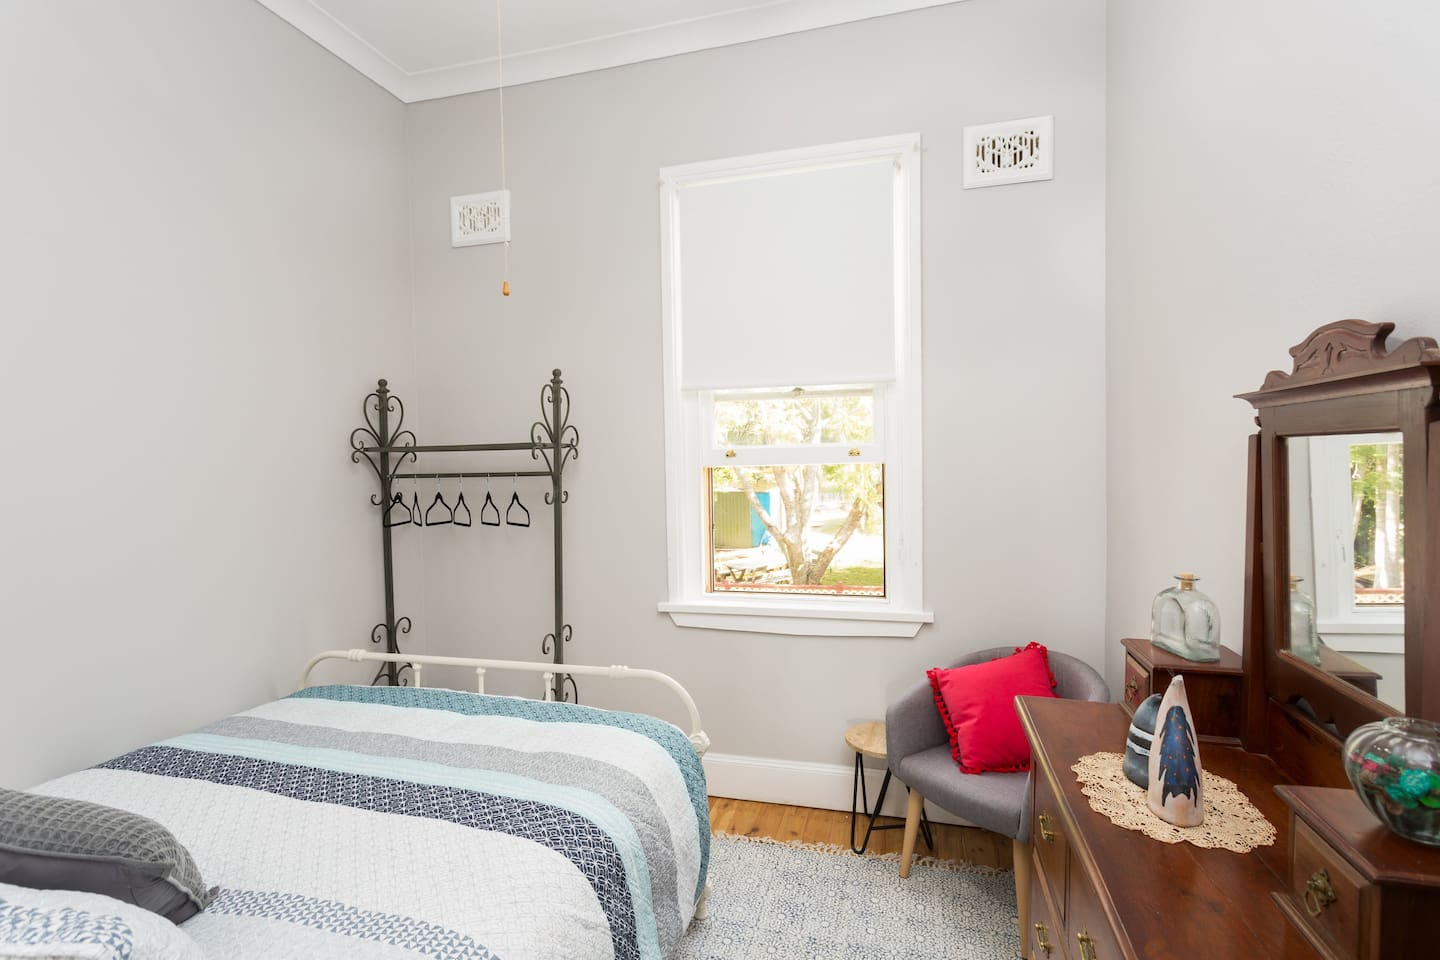 Cedar Room - Reminiscent of a cosy country cottage, with a large window to take in the view and a luxurious iron-framed queen bed, this room is perfect for a couple of nights to sneak away from it all, or perhaps a stop-over on your way through.